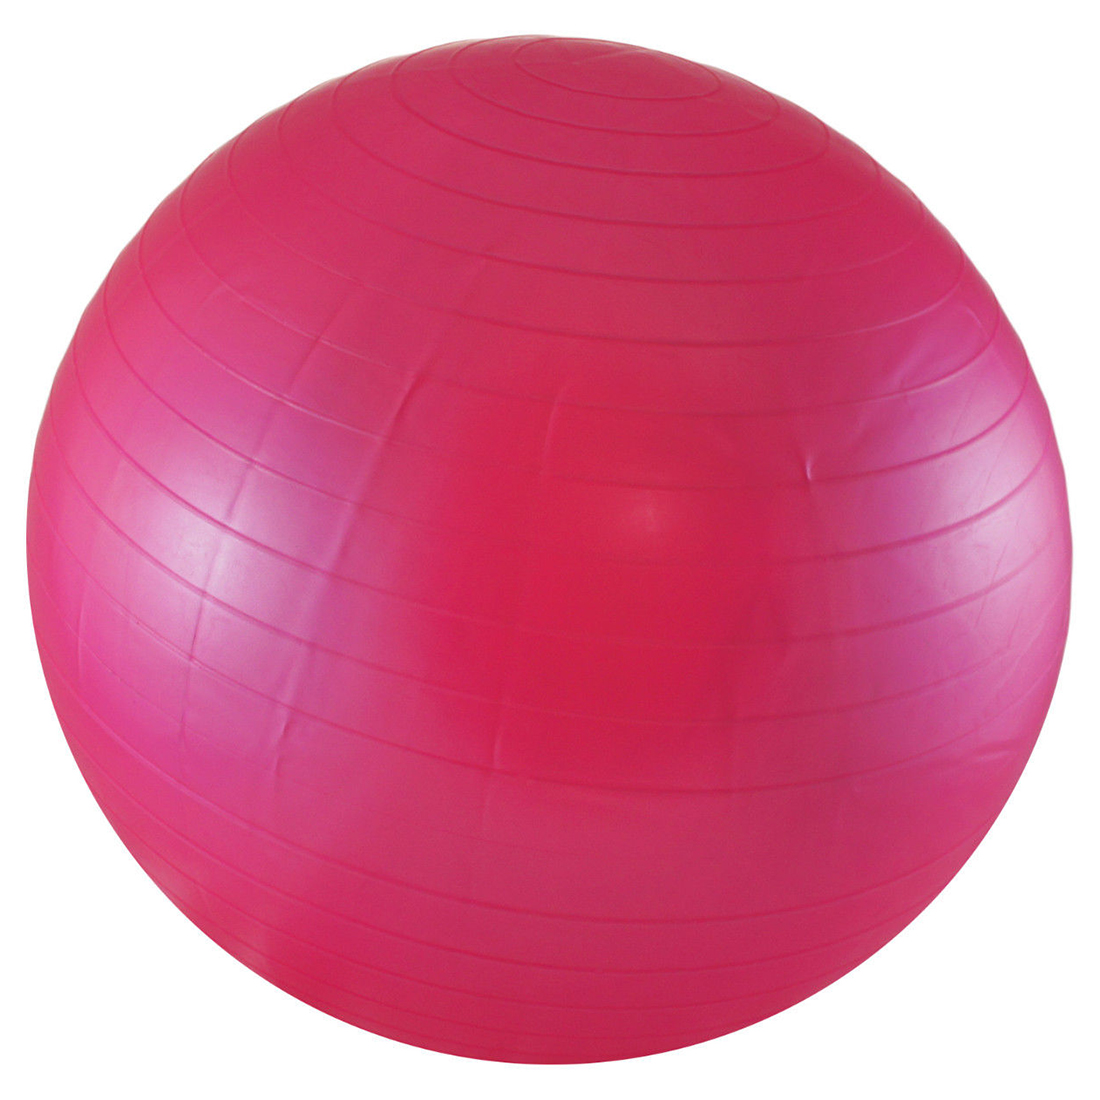 Pink ball chairs - Stability Ball Chair